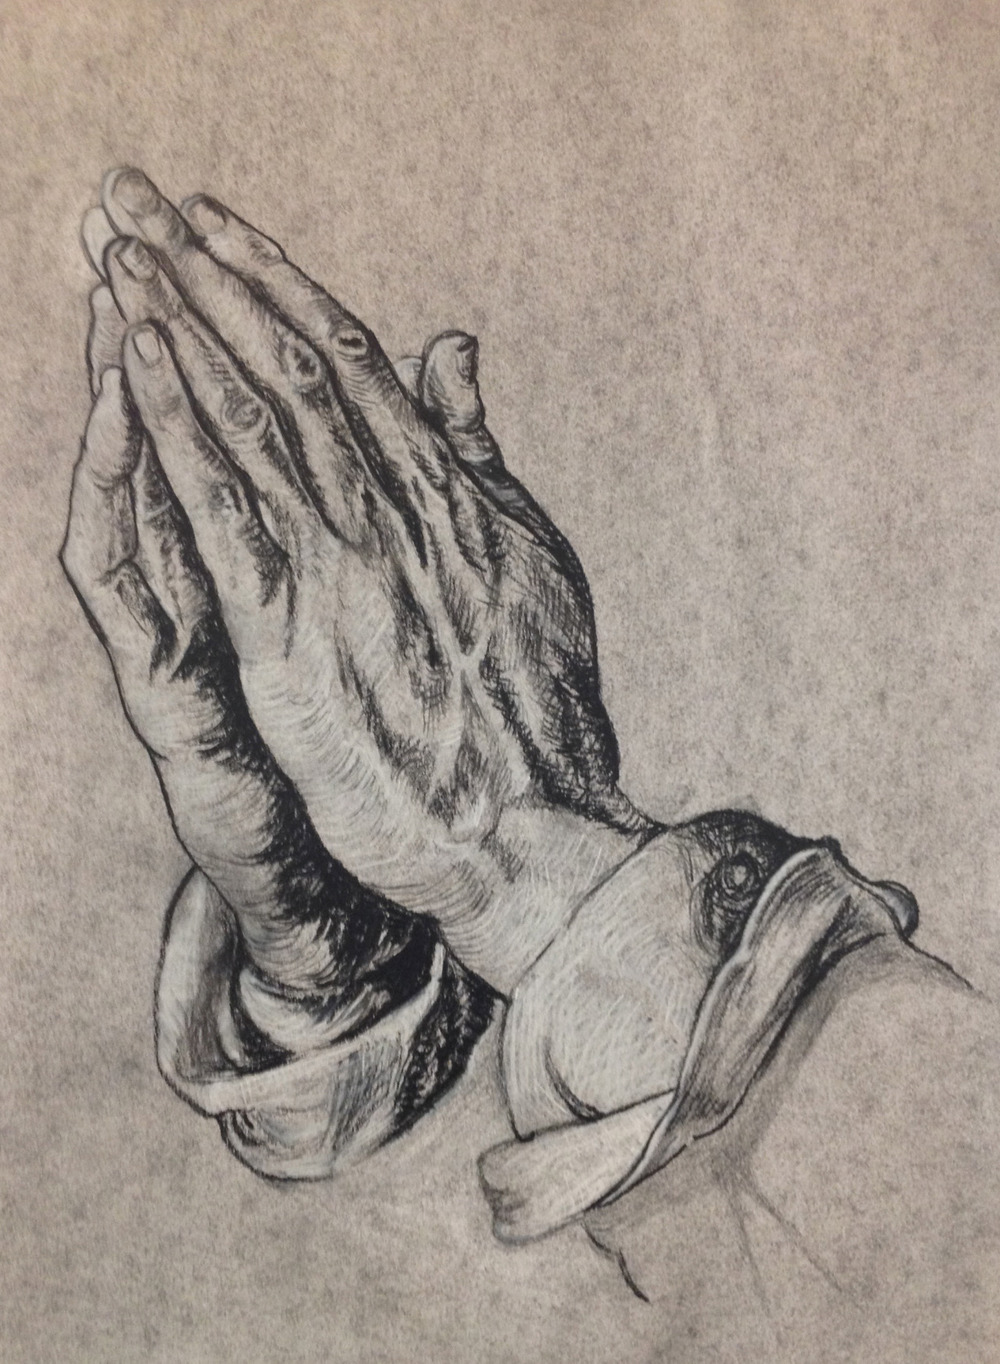 Drawing I: Praying Hands     (click here to view this entry on my website)     Charcoal, 9x12 in. Completed as a homework assignment to copy a piece from the Renaissance.